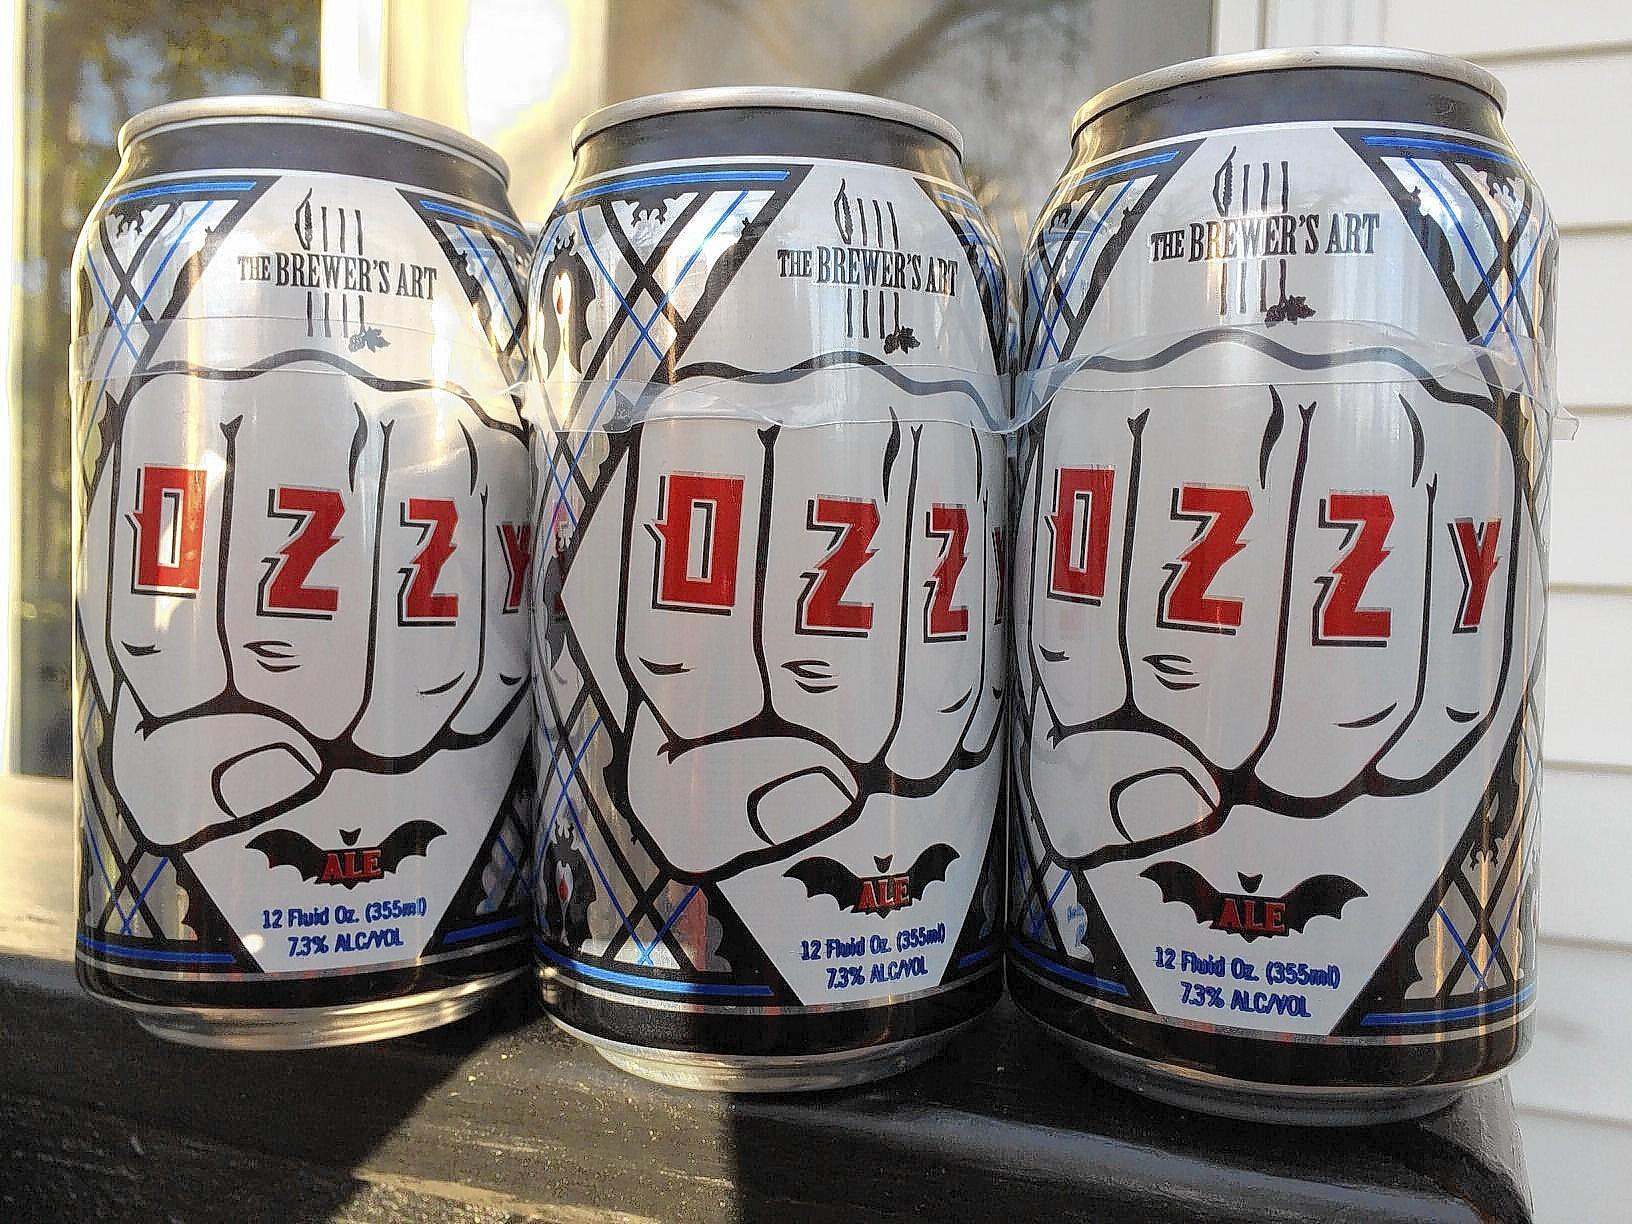 Ozzy, the Belgian-style strong pale ale made by the Baltimore-based company The Brewer's Art.